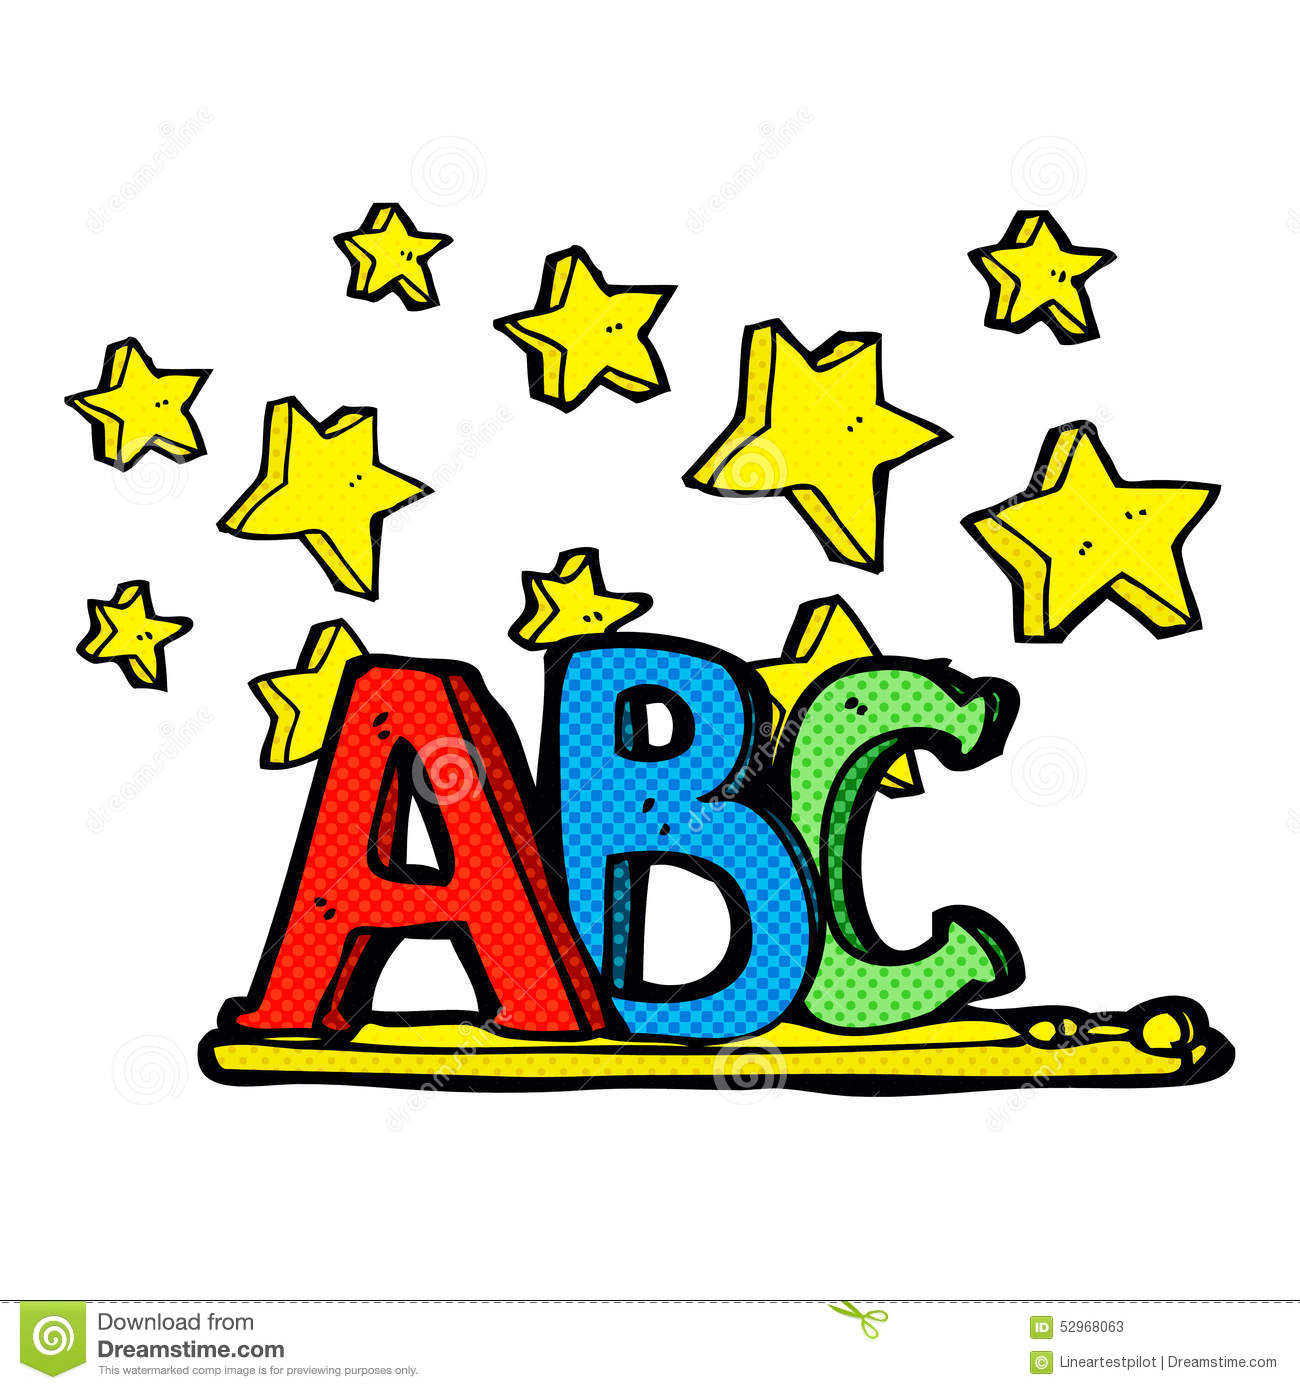 Cartoon Characters 7 Letters : Abc cartoon stock illustration image of letters quirky